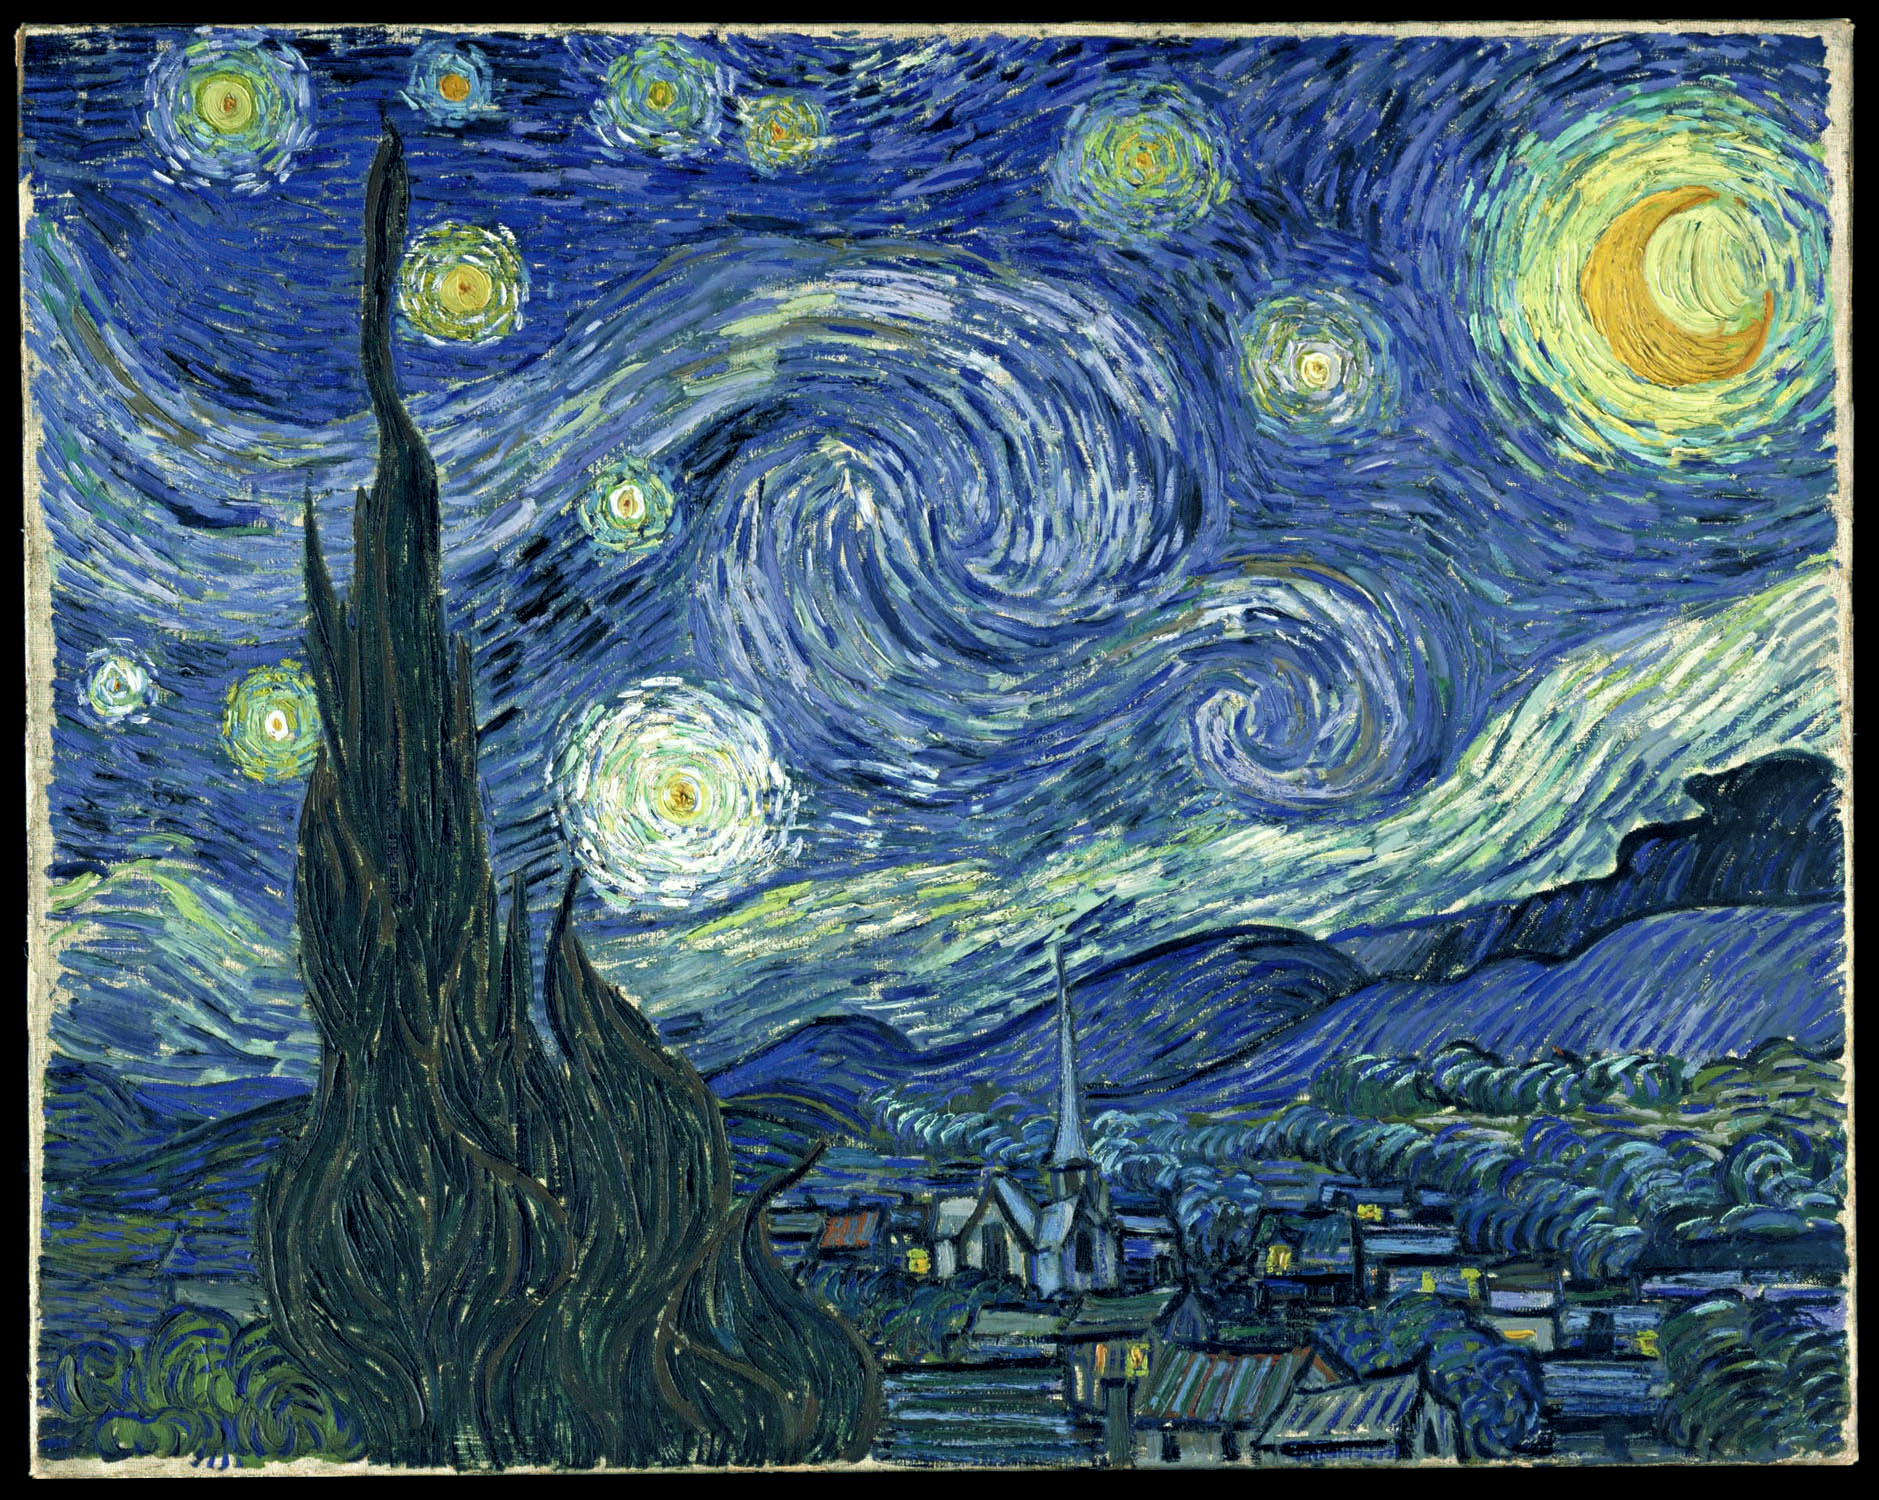 Van Gough Starry Night